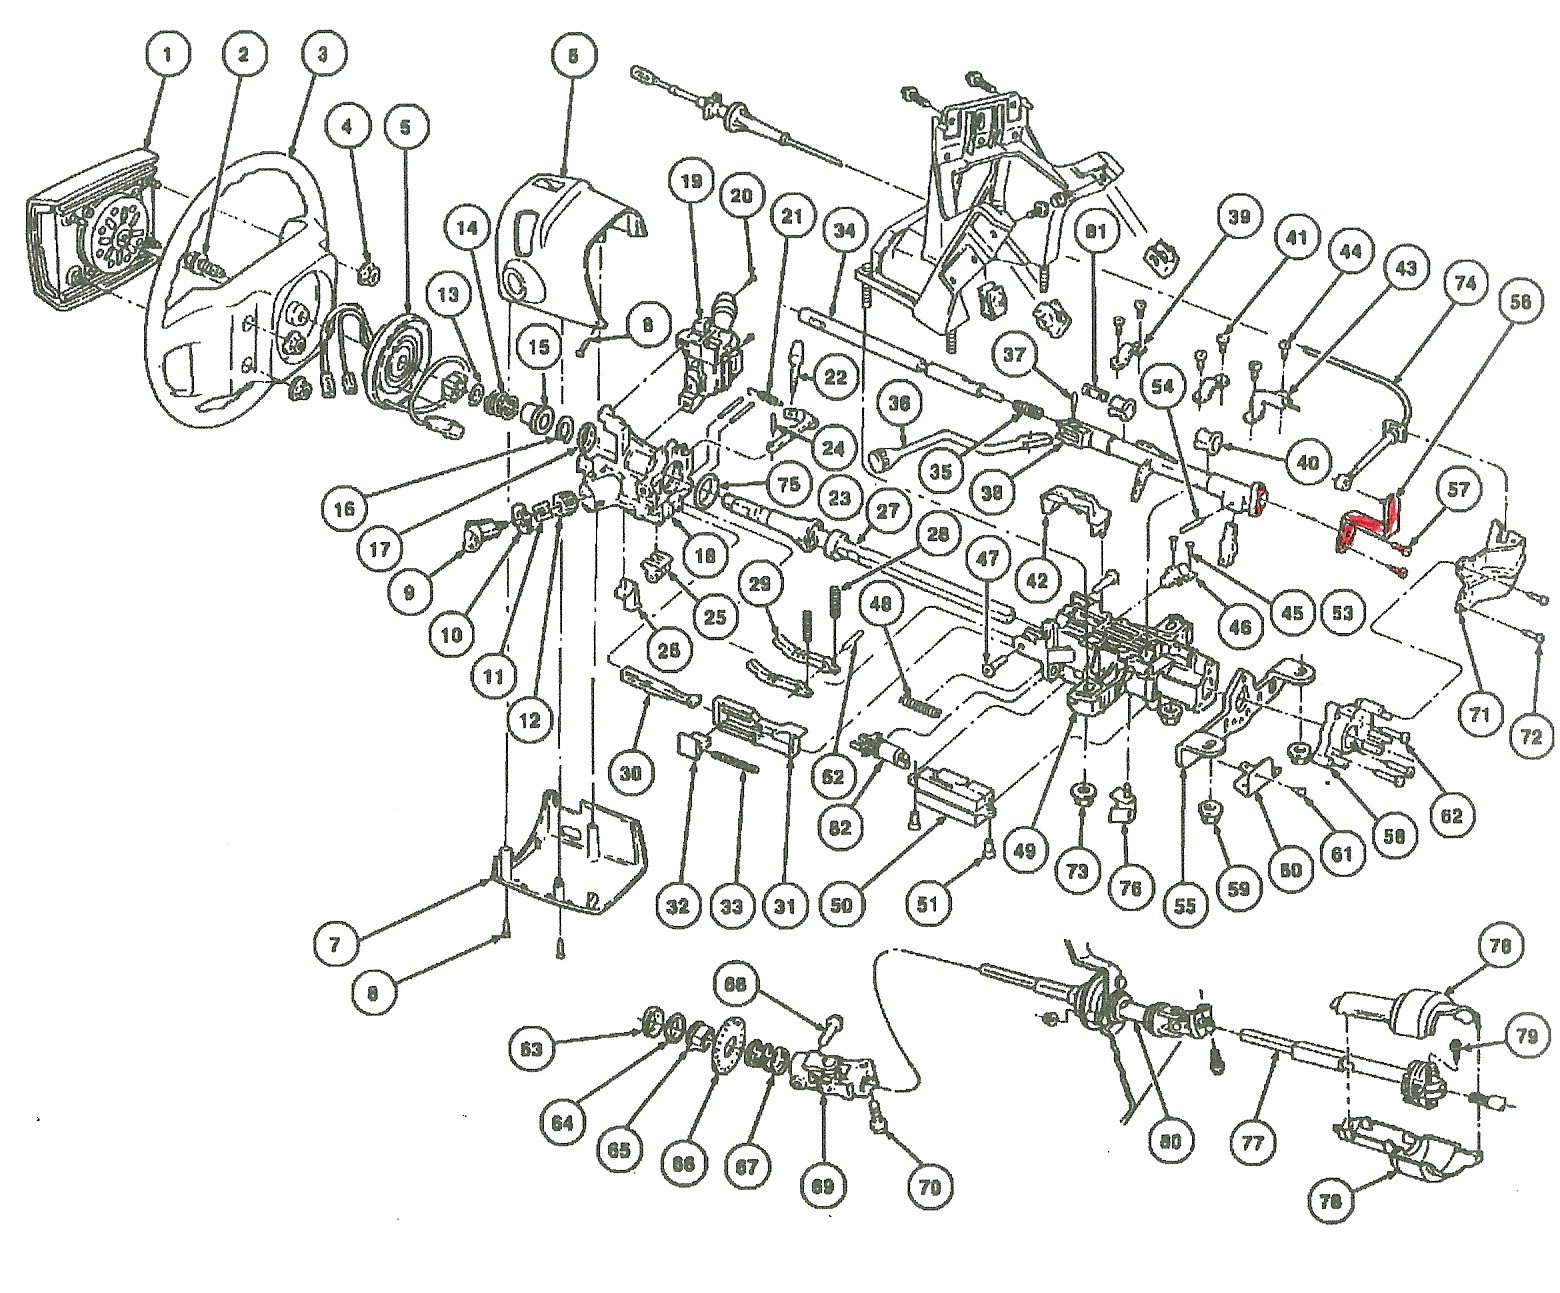 Duramax Sel Wiring Diagram Library Chevy 6 5 Source 2 Engine Free Image